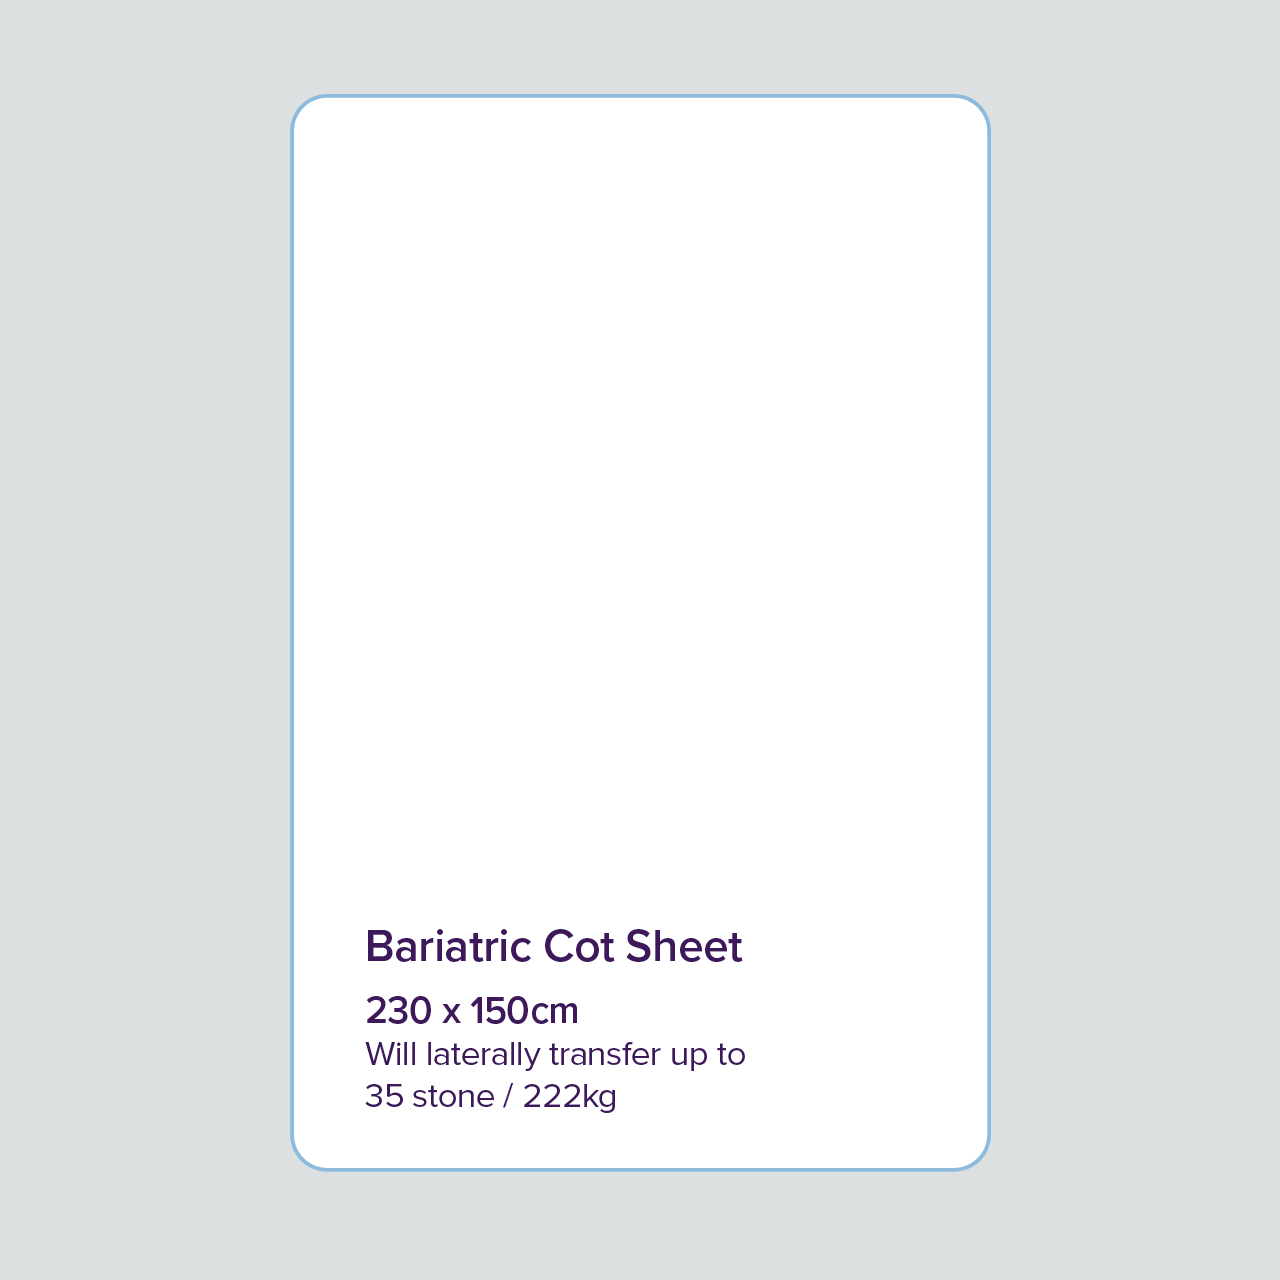 Image for Bariatric Cot Sheet